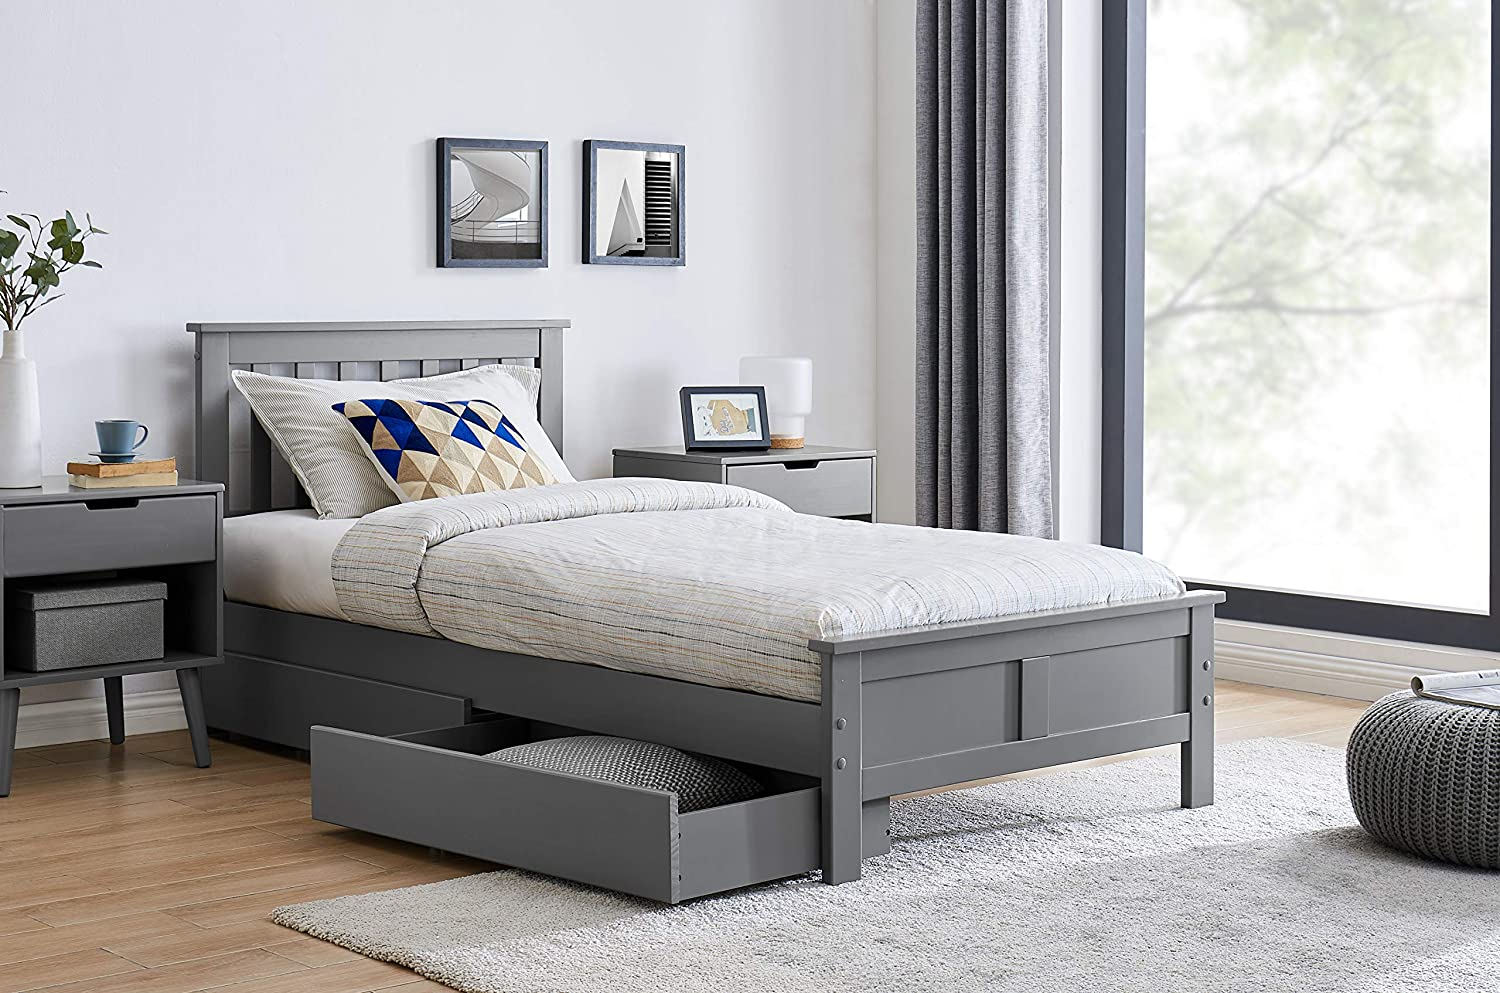 Furniturebox UK Azure Grey Wooden Solid Pine Quality Single Double King Bed Frame And Sprung Mattress Double Bed + Mattress